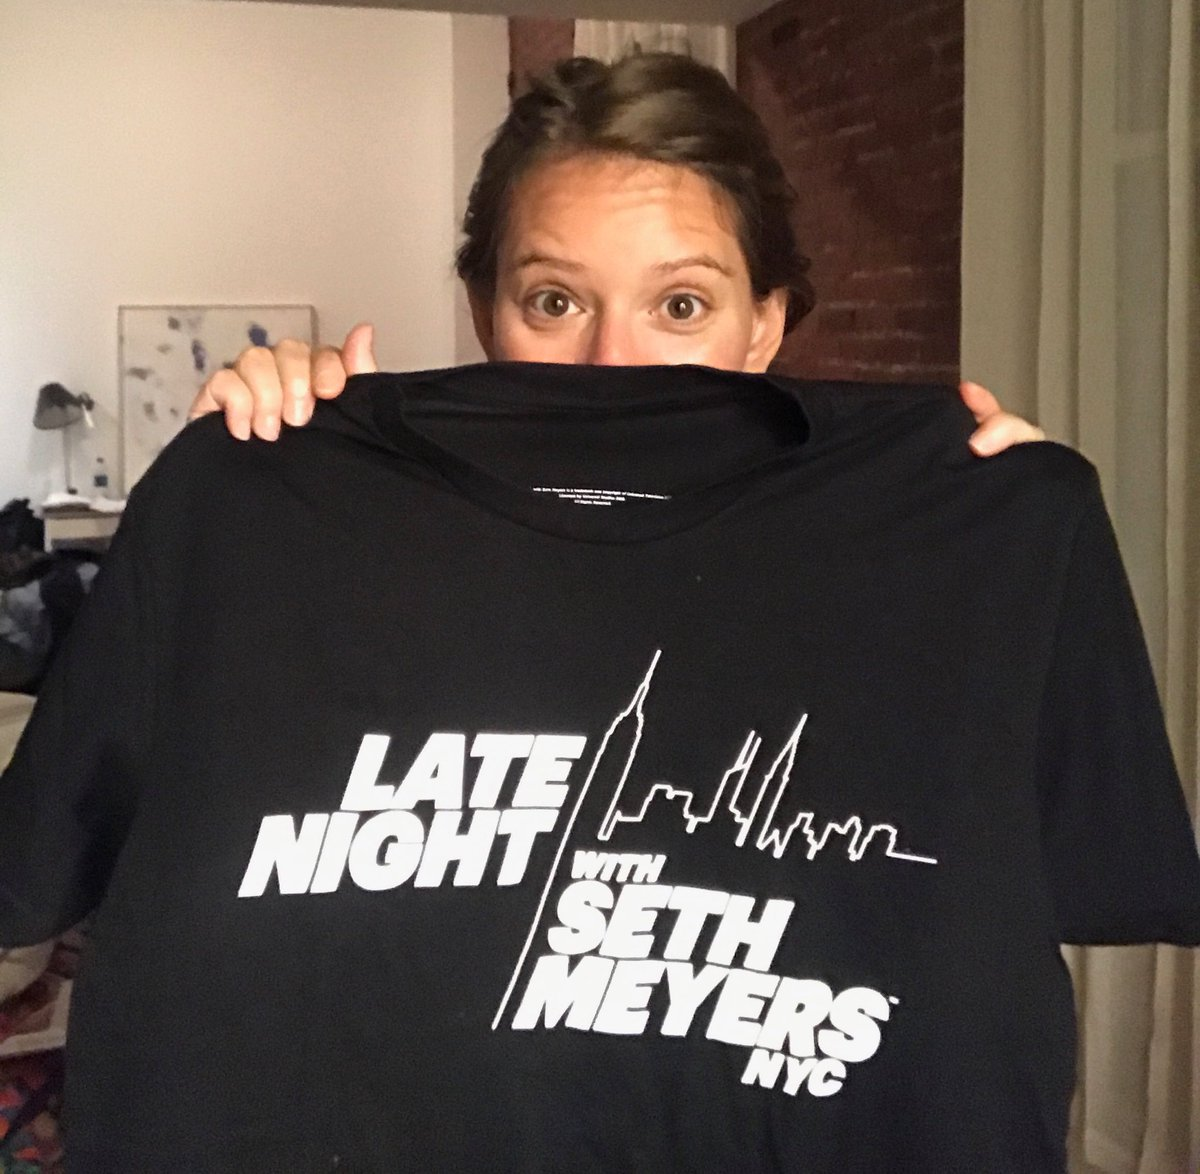 I've got a new sleep shirt for my late night TV viewing and it's oh so appropriate for tonight. 1230 #LNSM